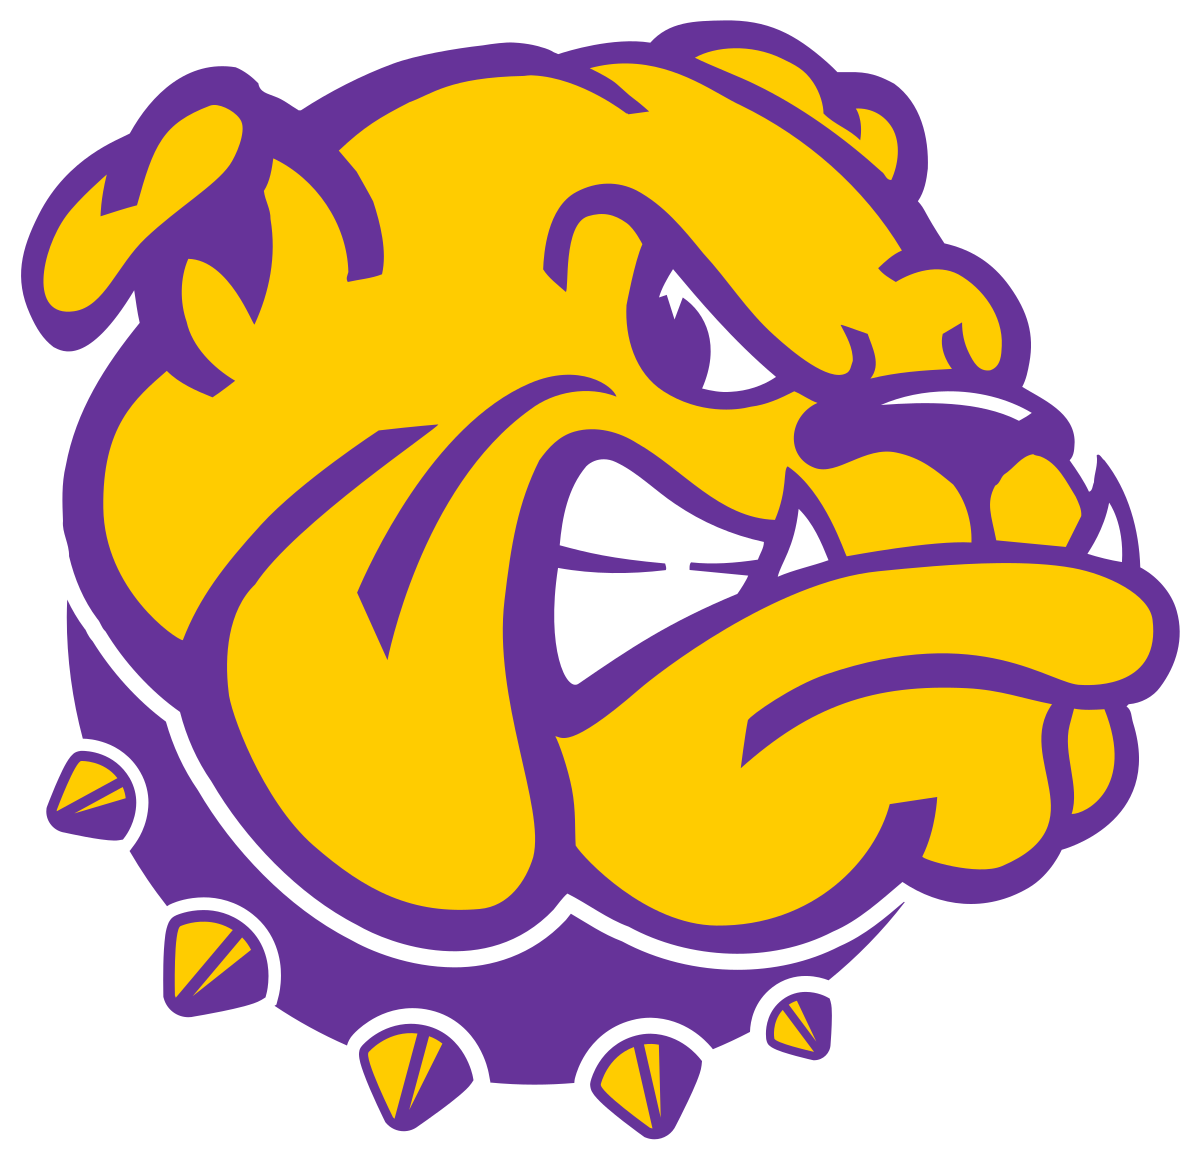 Shermanhall cliparts jpg library library Western Illinois Leathernecks - Wikipedia jpg library library